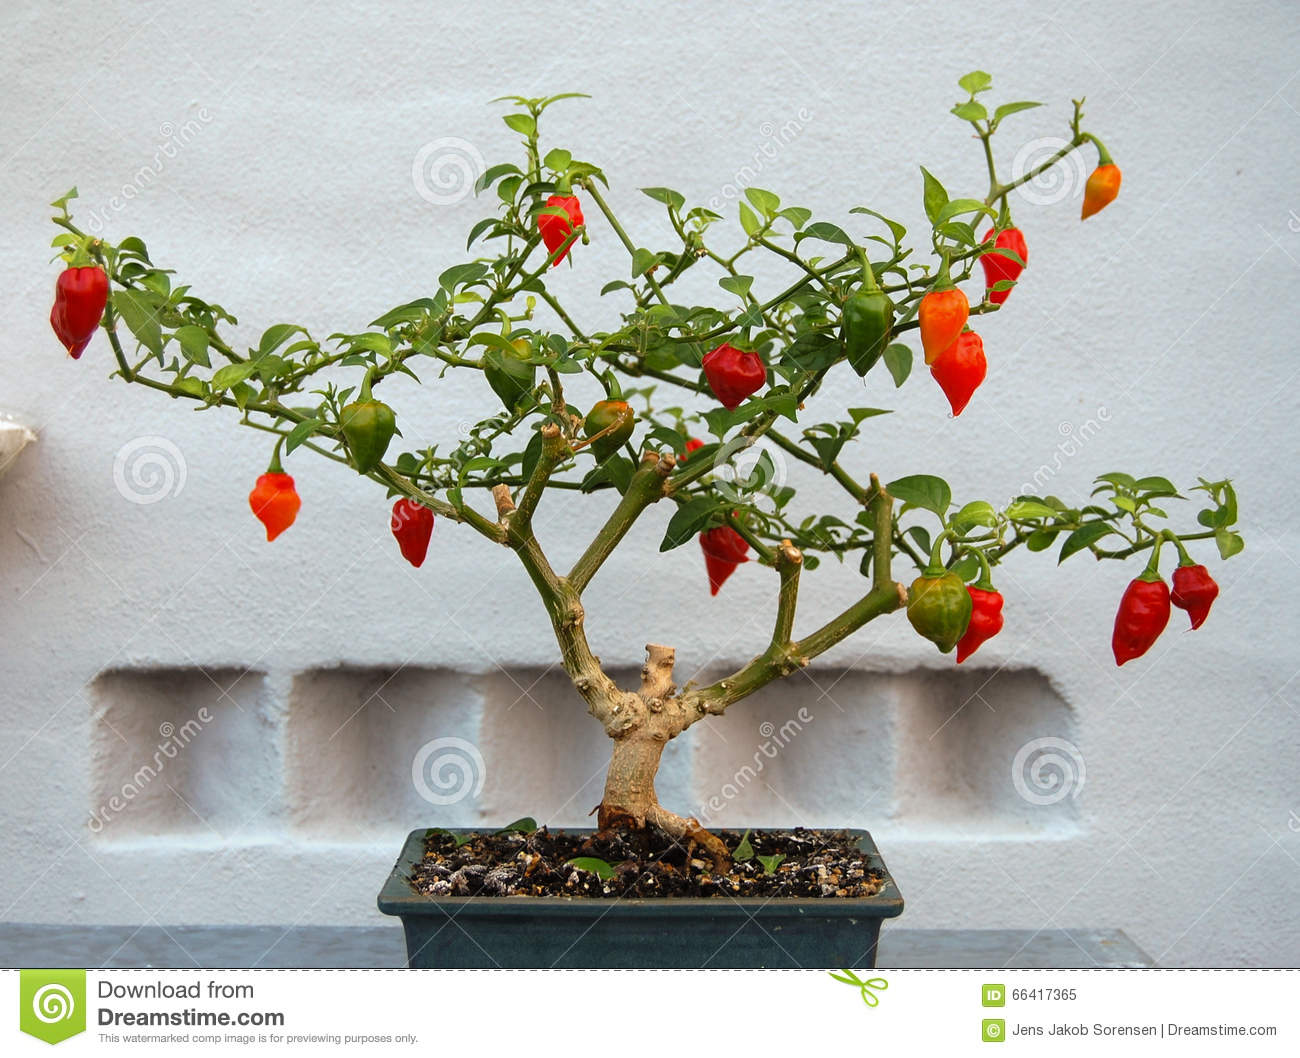 Bonchi Chili Pepper Plant Stock Image Image Of Pepper 66417365